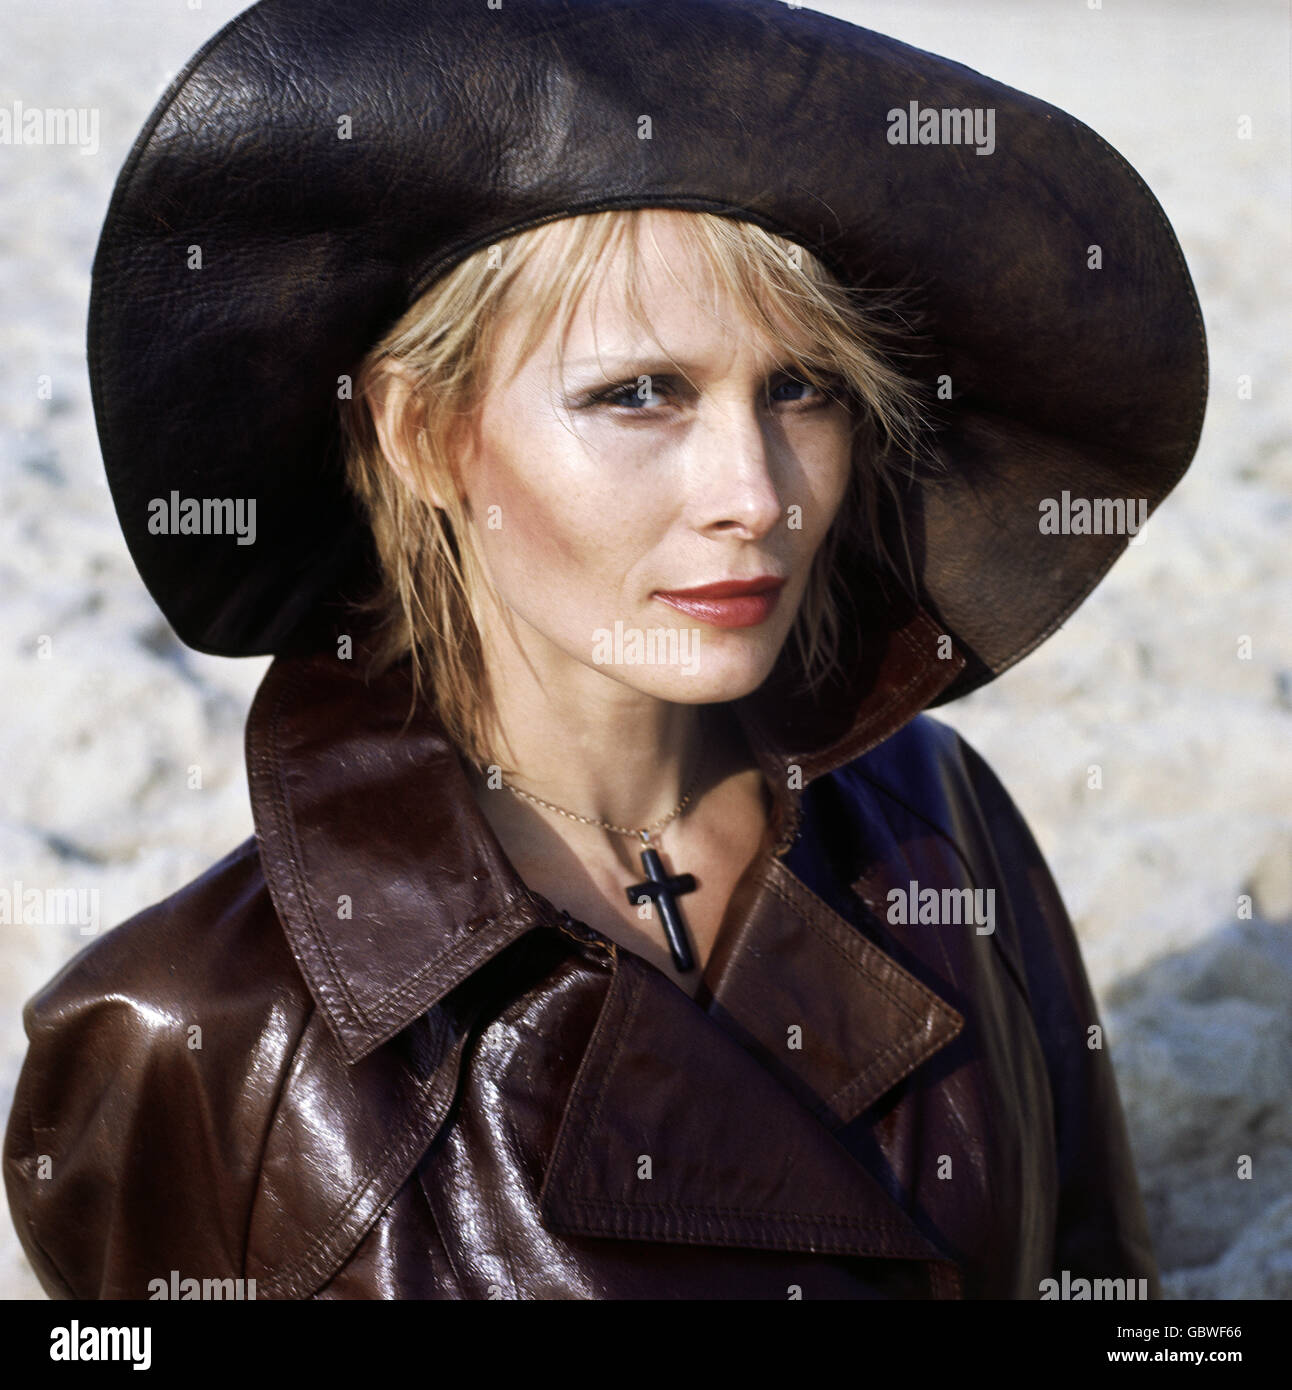 fashion, 1970s, ladie's fashion, woman with leather hat and leather jacket, Additional-Rights-Clearences-NA - Stock Image